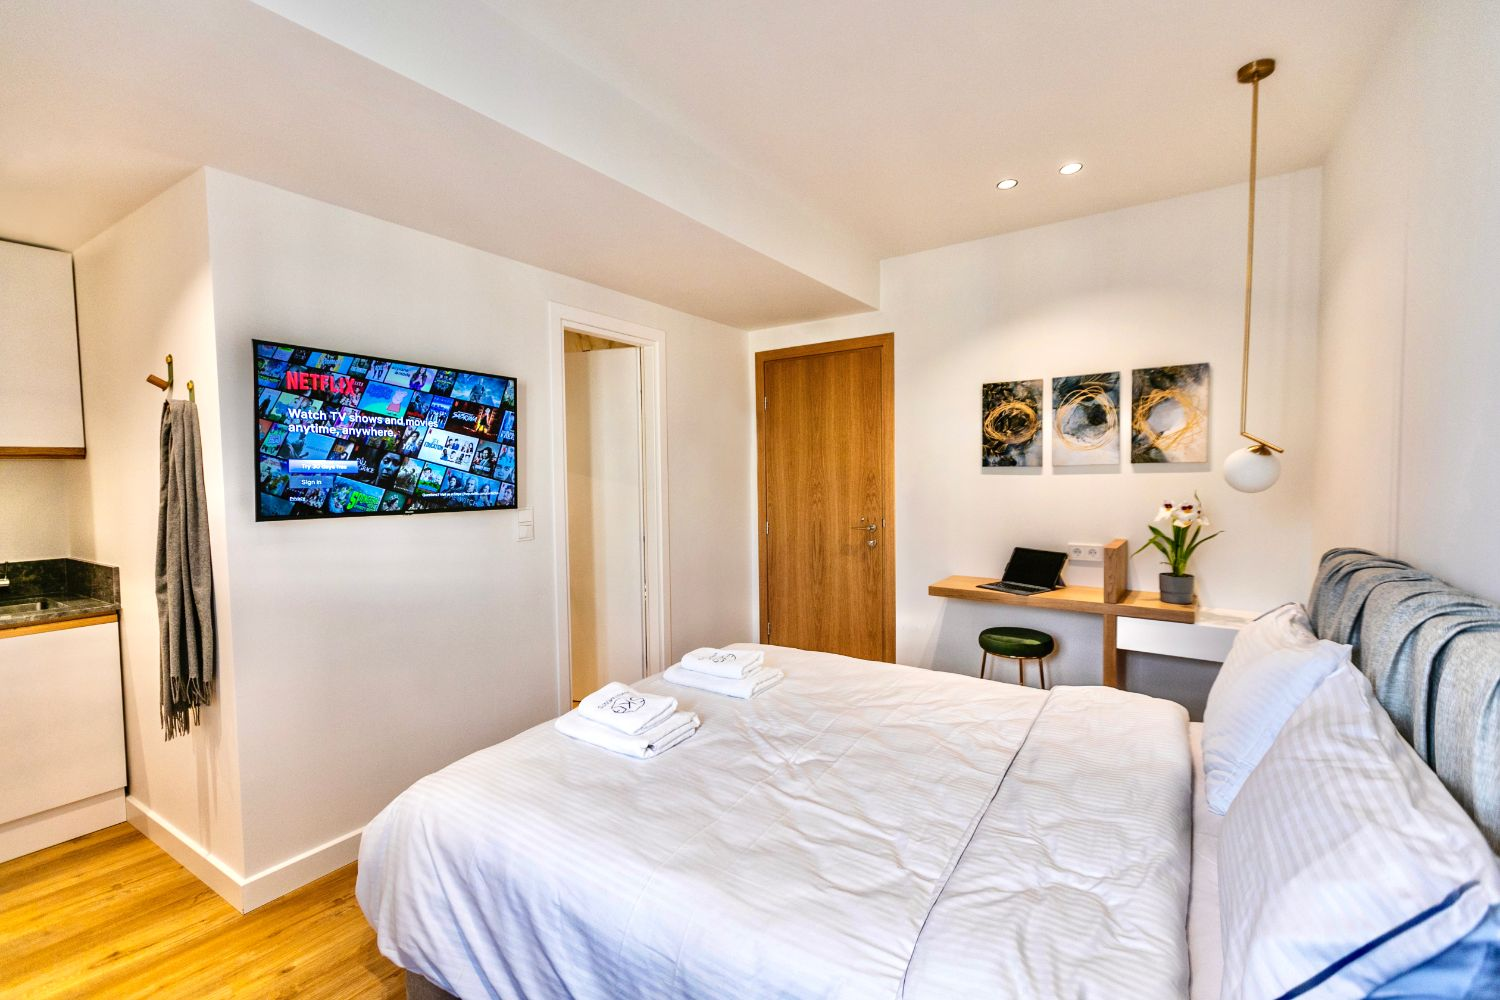 #702 Bedroom with Double Bed